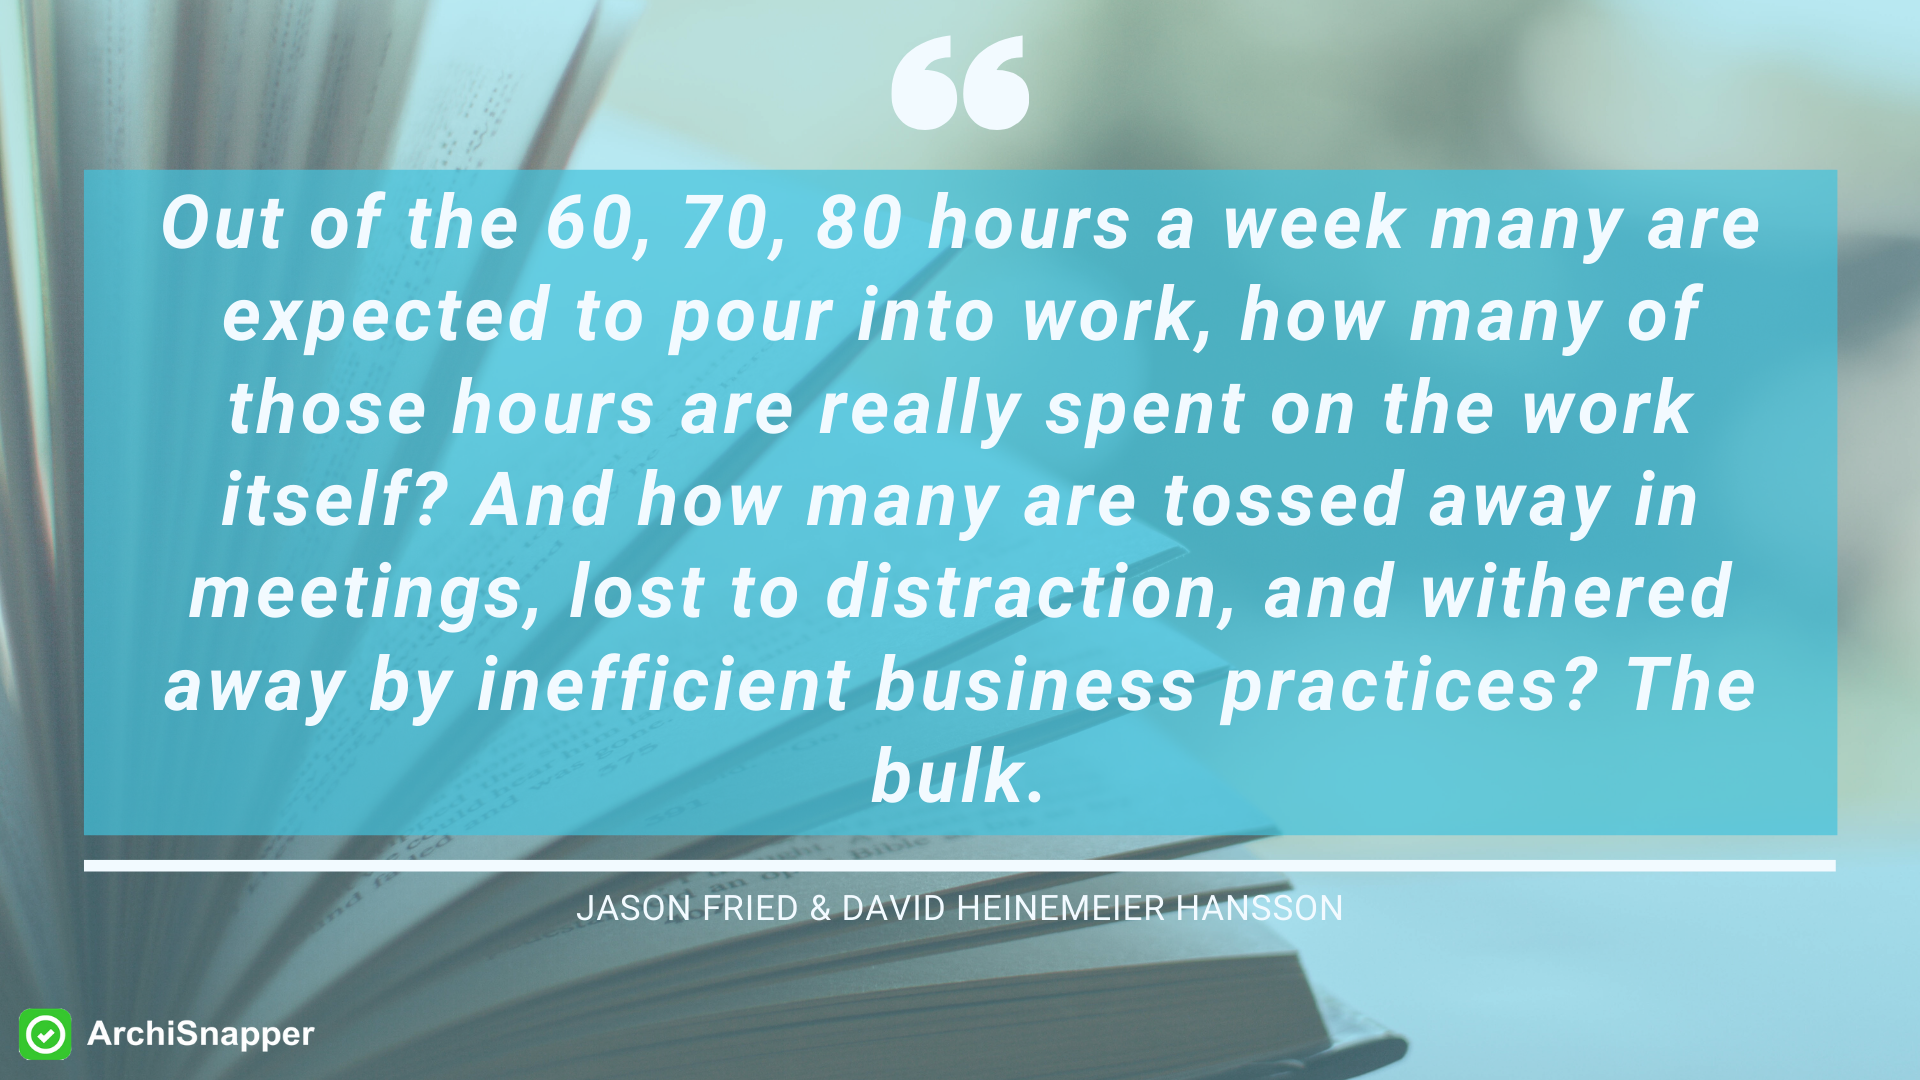 """Out of the 60, 70, 80 hours a week many are expected to pour into work, how many of those hours are really spent on the work itself? And how many are tossed away in meetings, lost to distraction, and withered away by inefficient business practices? The bulk."""